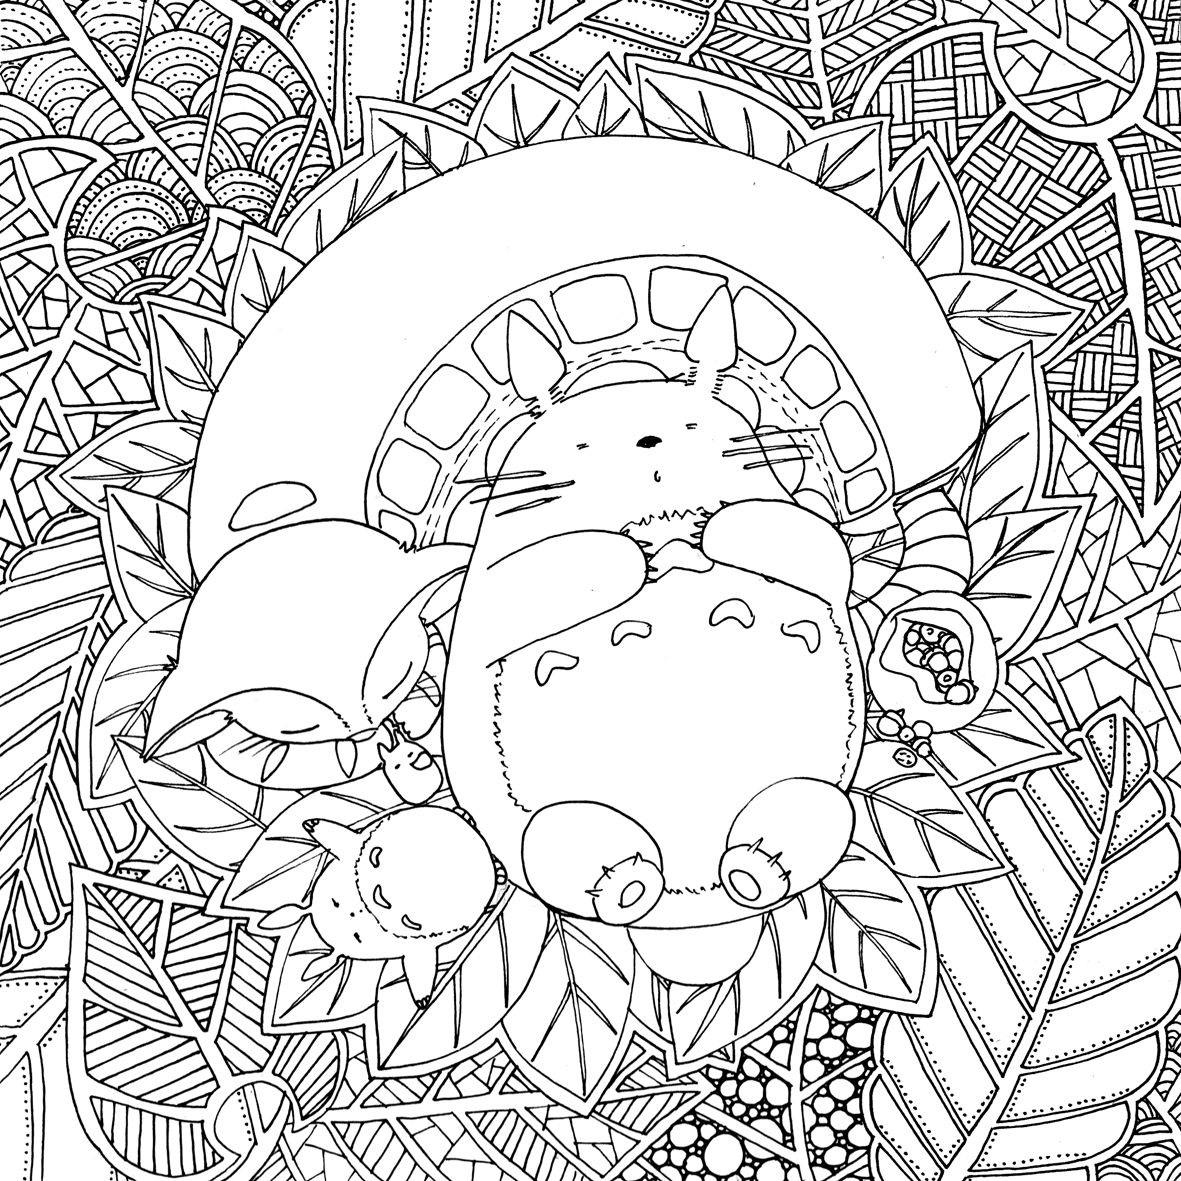 Doodles and totoro part 2 le chocobo - Coloriage therapie ...